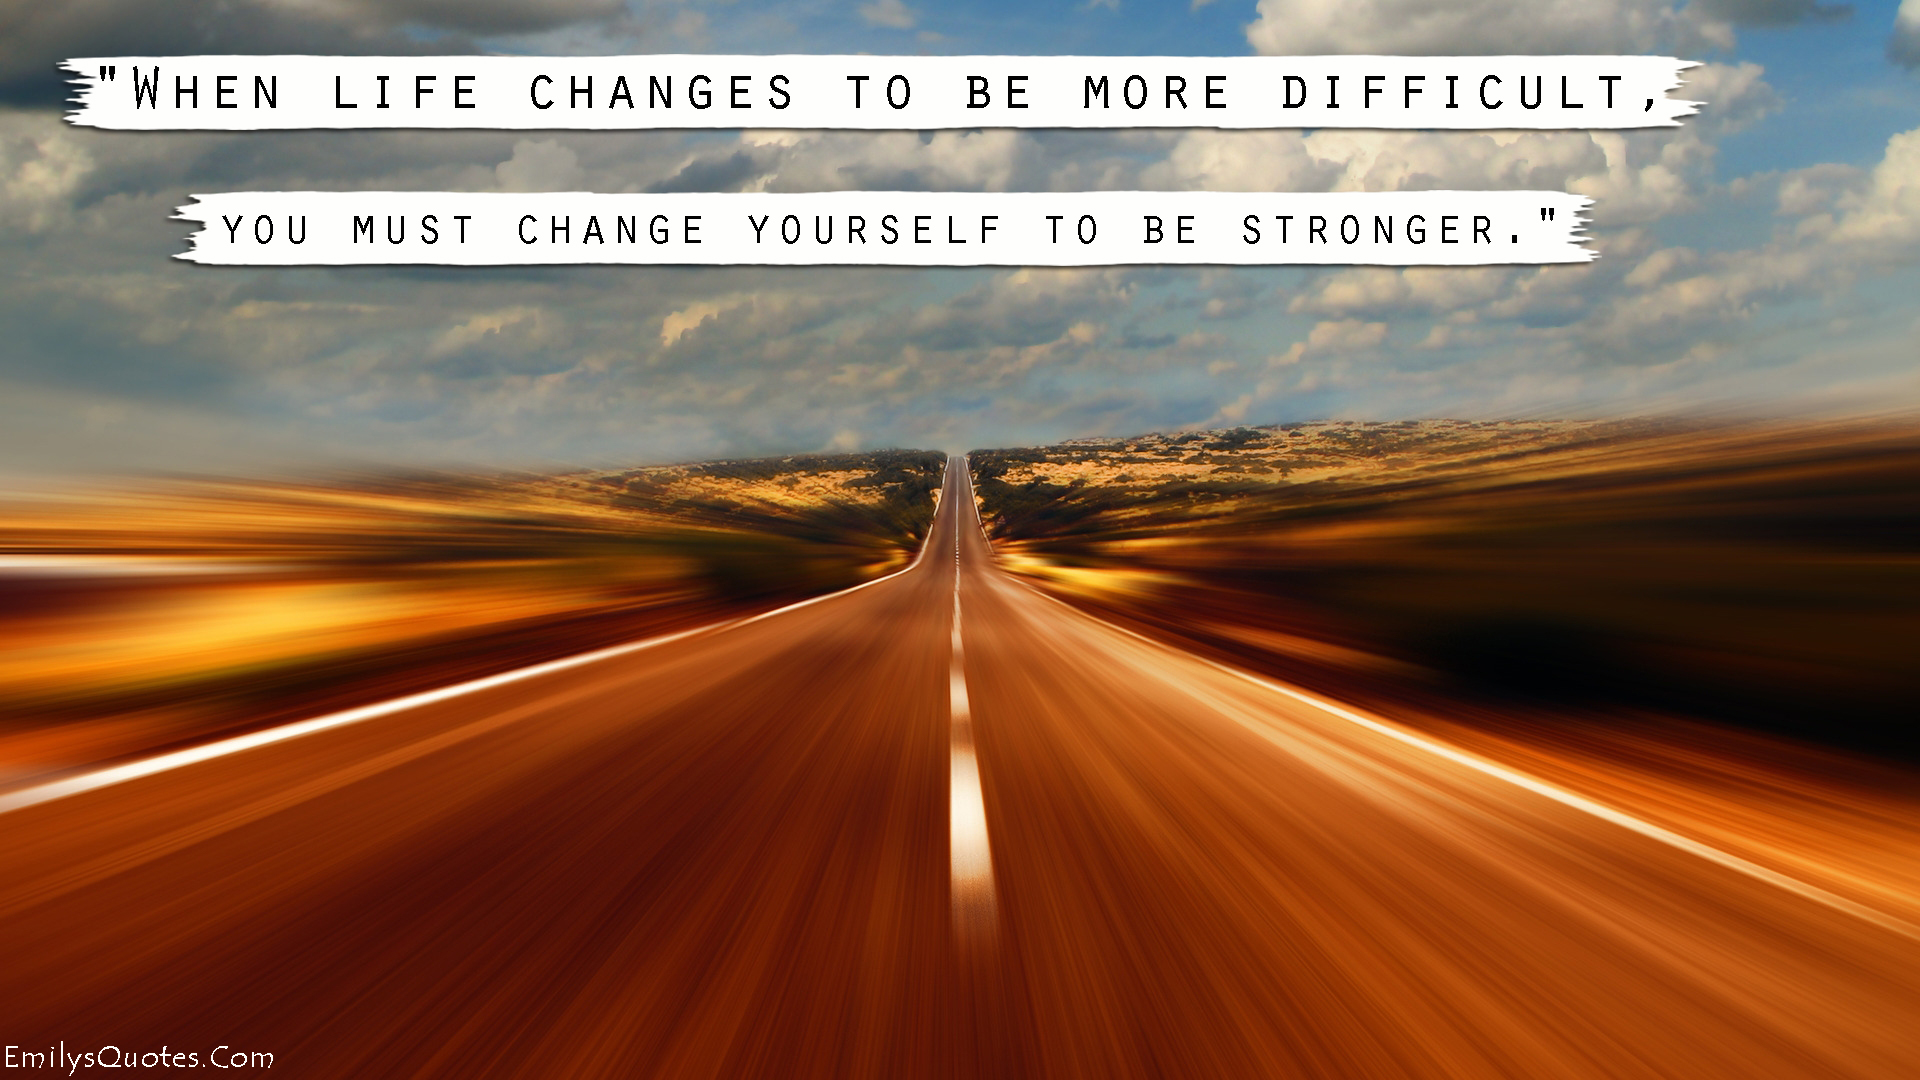 Life Changes Quotes When Life Changes To Be More Difficult You Must Change Yourself